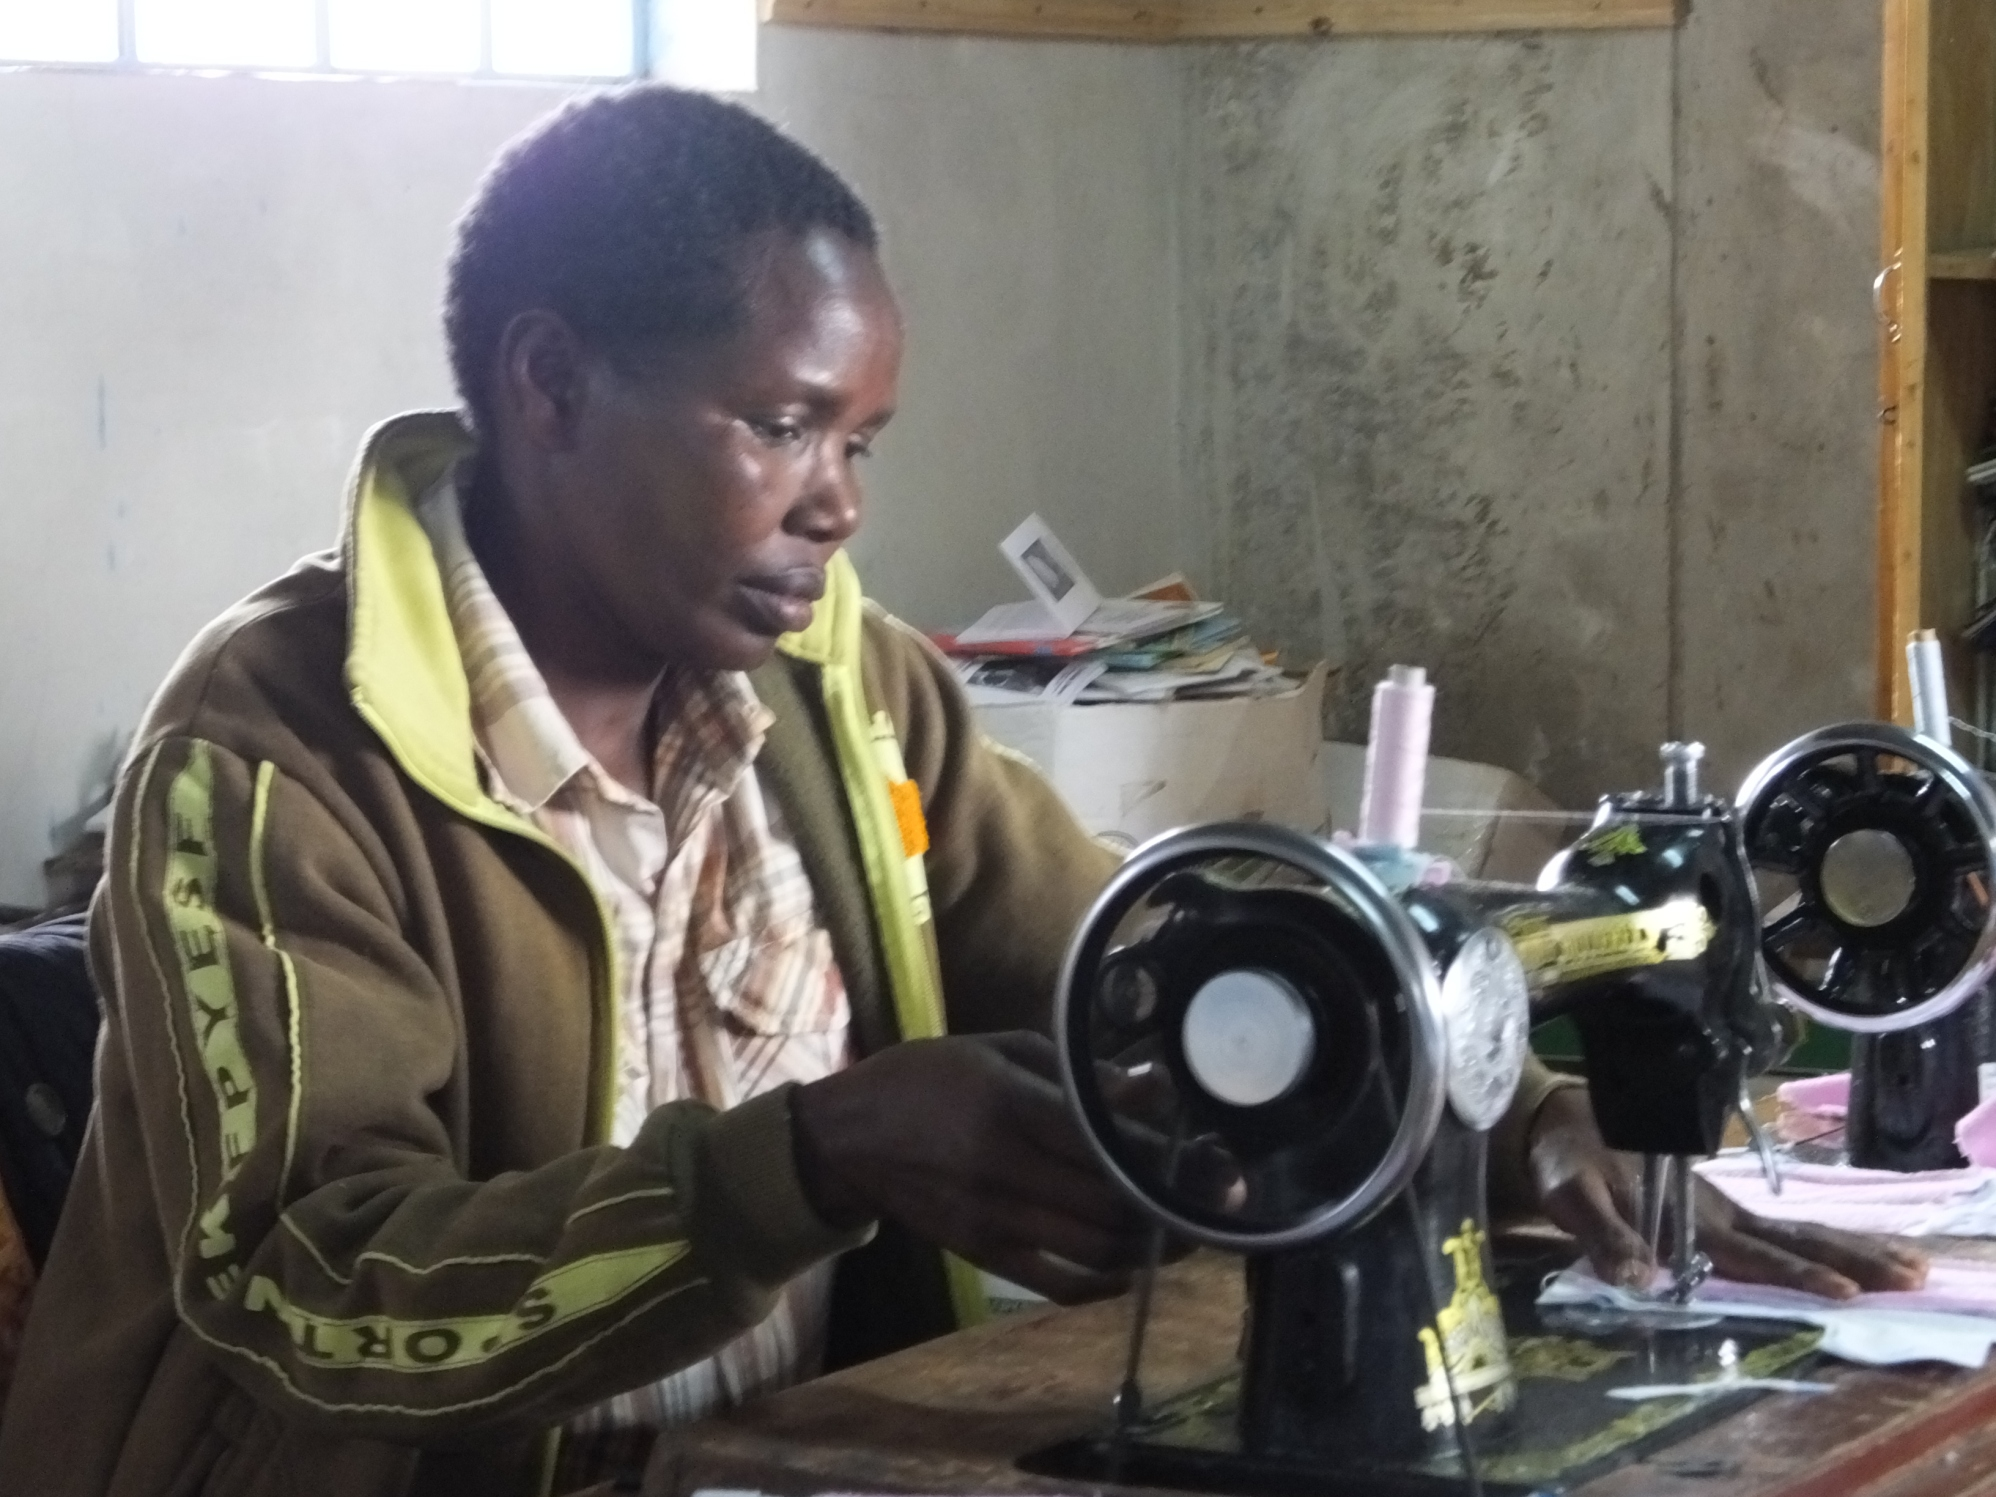 Member of the sewing team of the Soar Kenya Widows Self-Help Group.